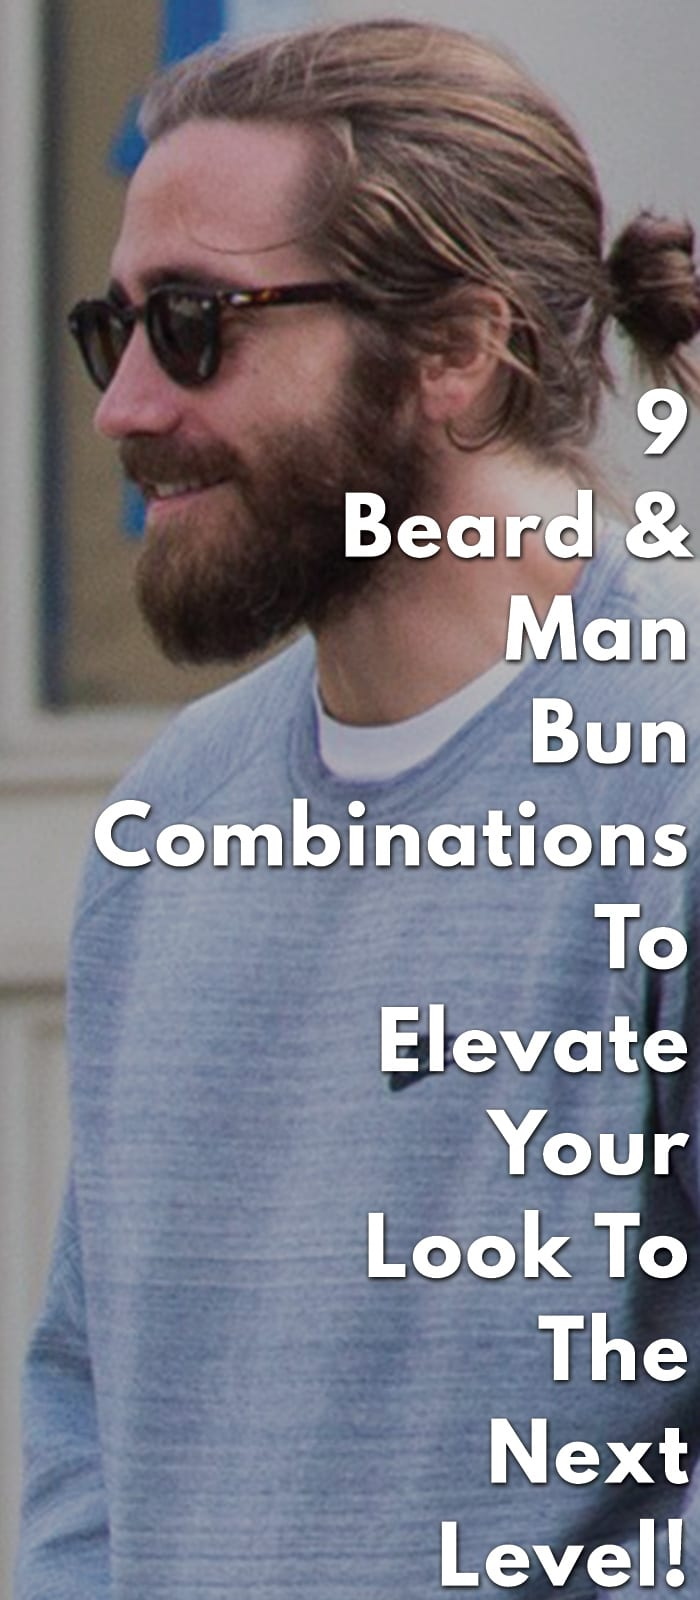 9-Beard-&-Man-Bun-Combinations-To-Elevate-Your-Look-To-The-Next-Level!.